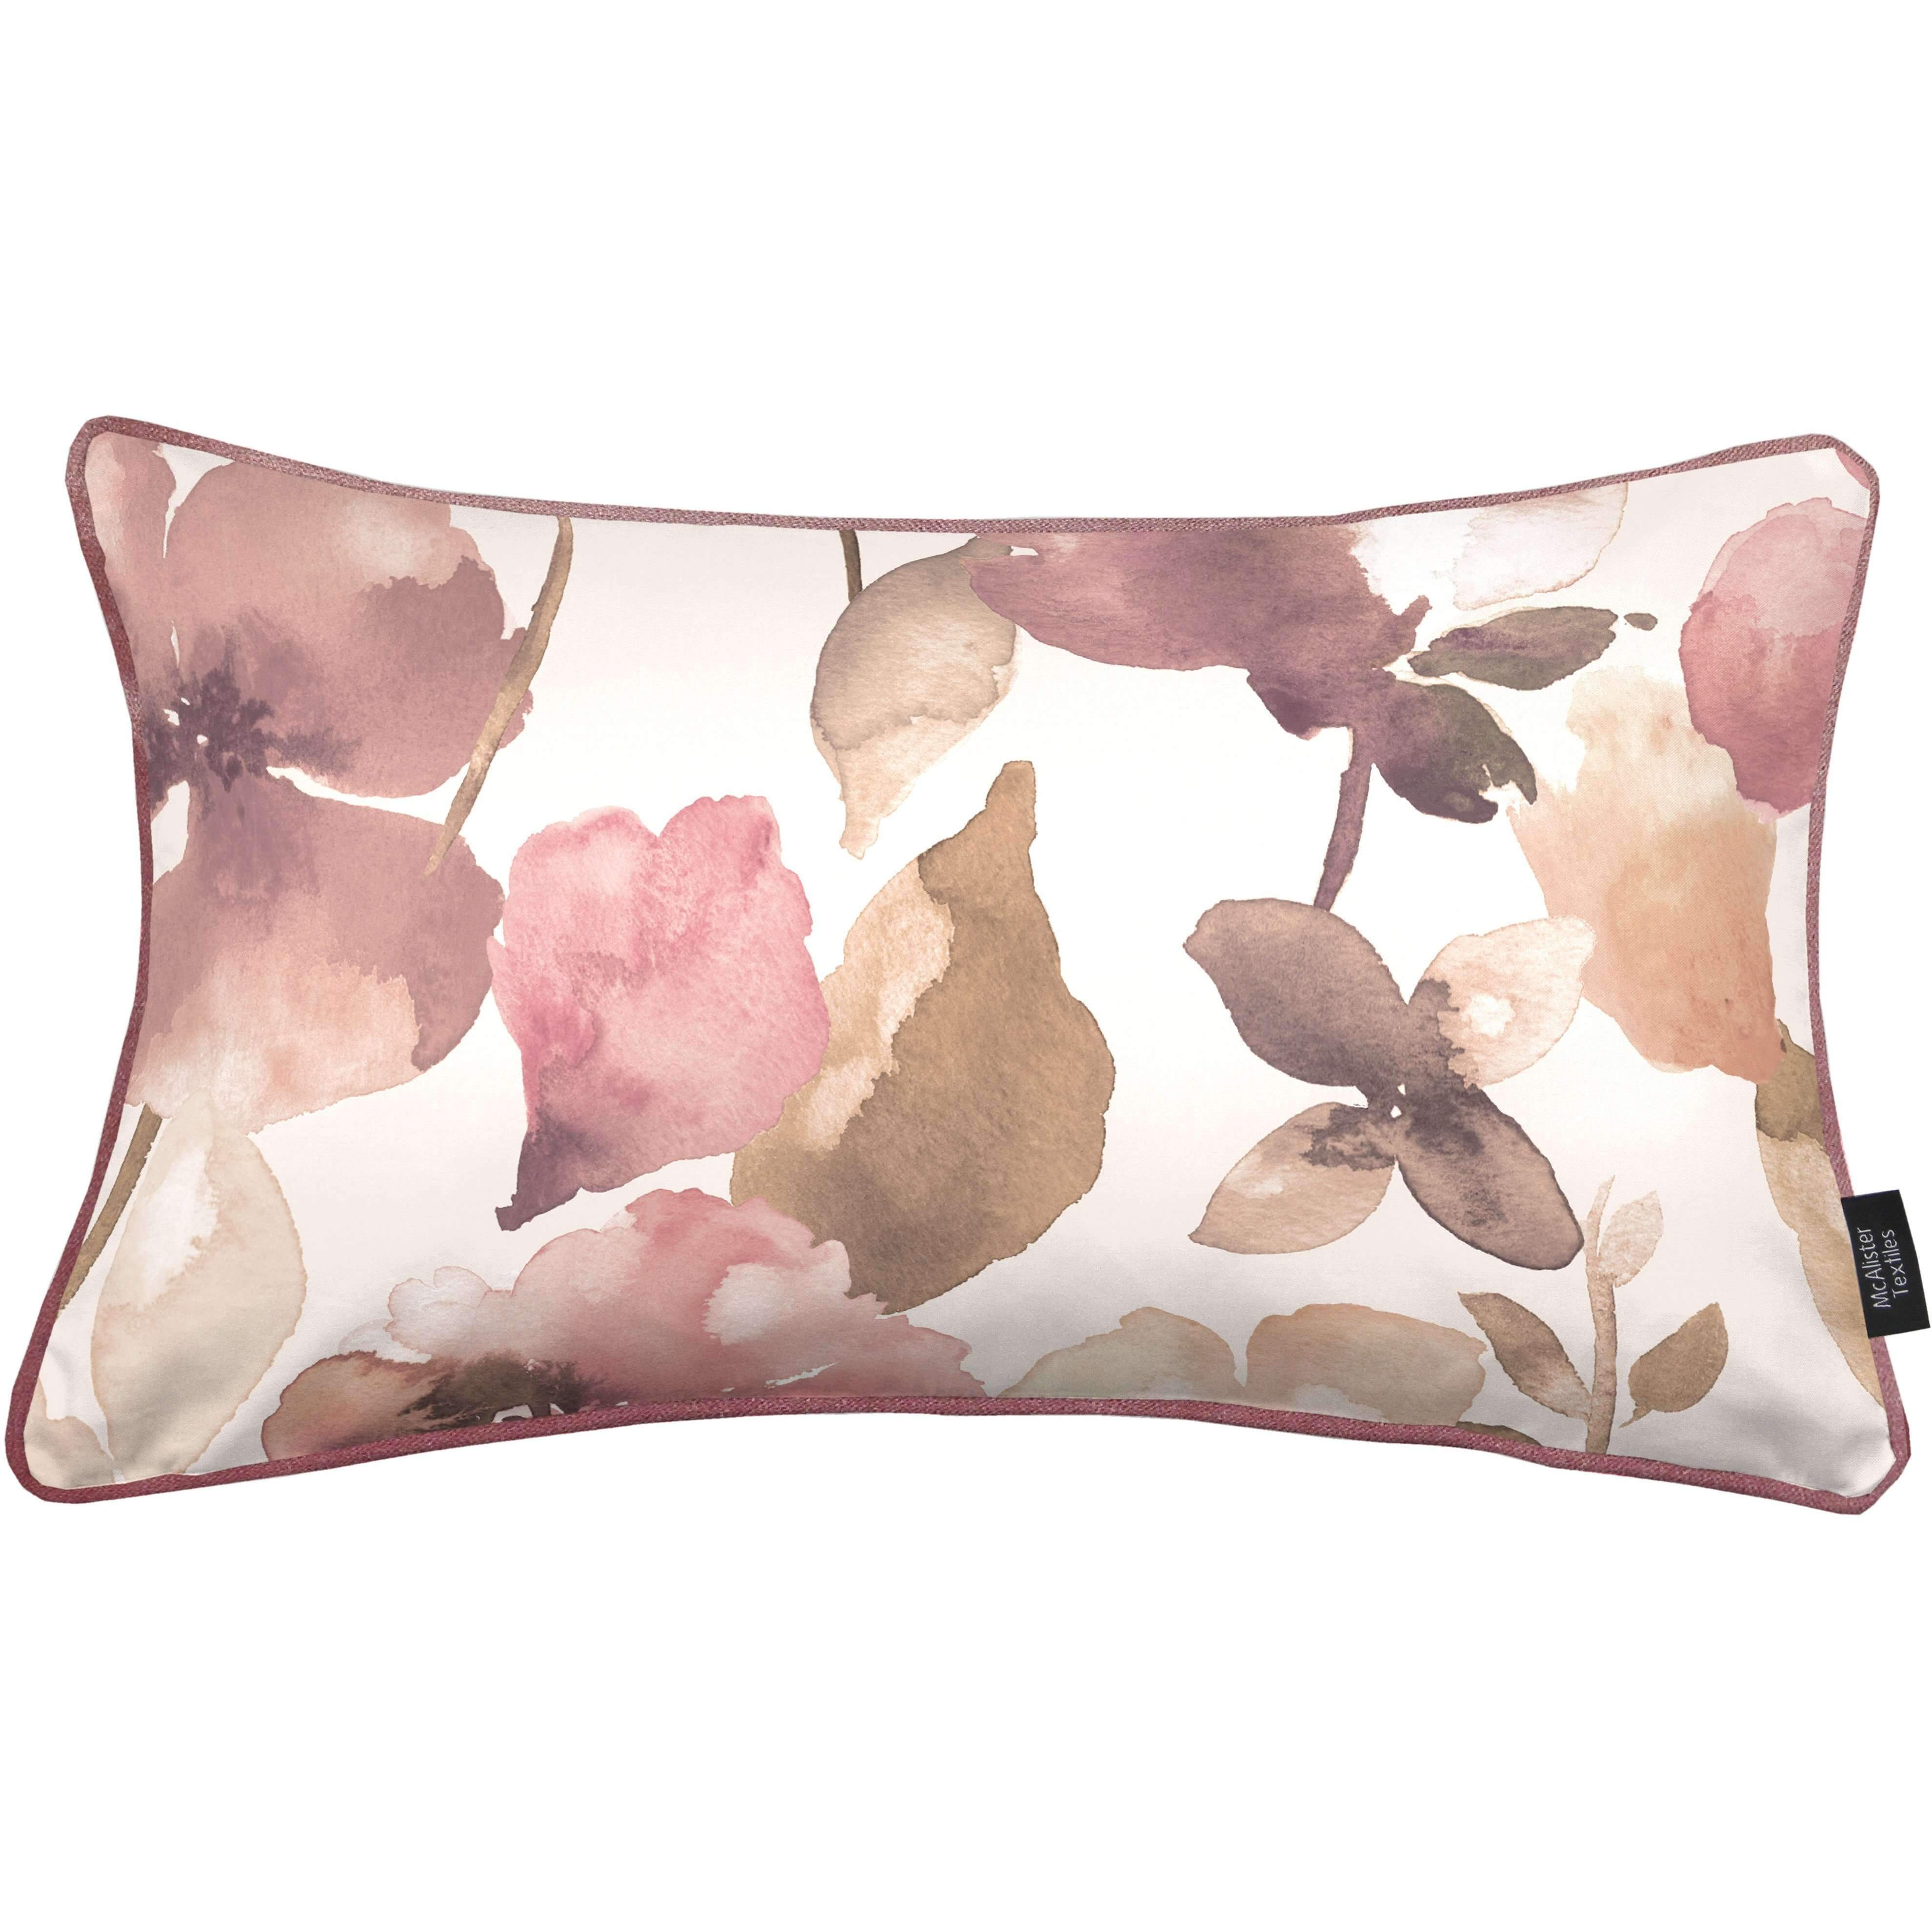 McAlister Textiles Blush Pink Floral Velvet Cushion Cushions and Covers Cover Only 50cm x 30cm